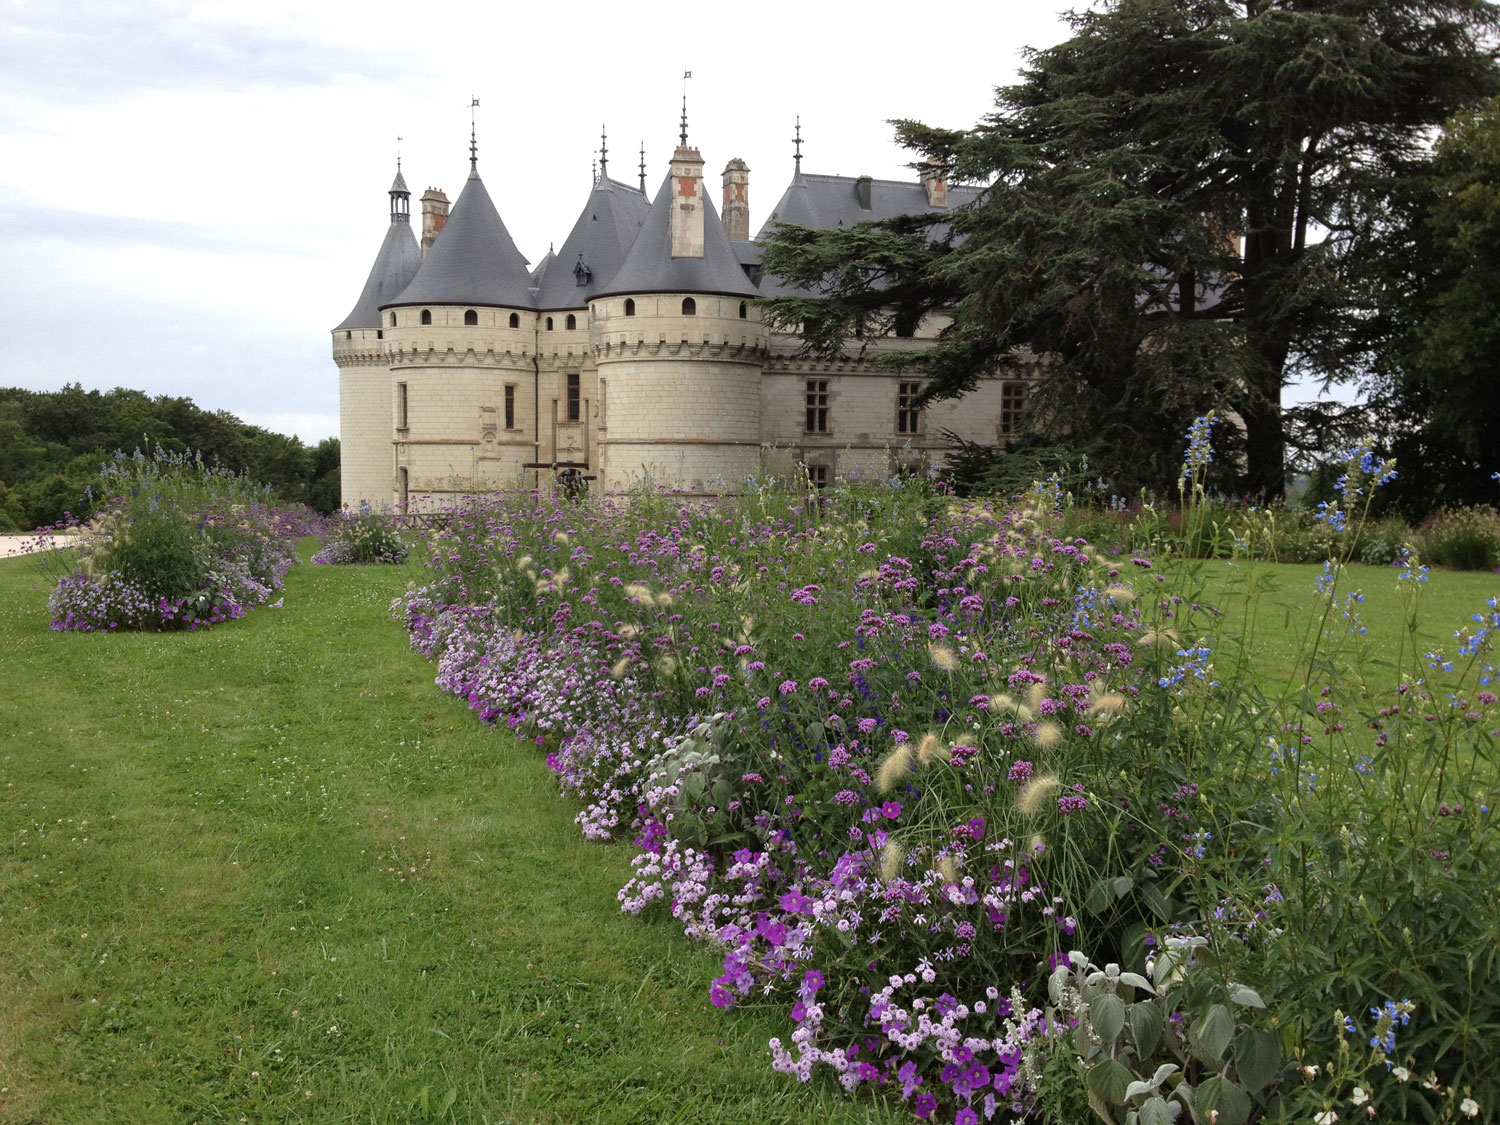 Exceptionnel Monday's Travel Photos – Château de Chaumont, Loire Valley, France  QF14